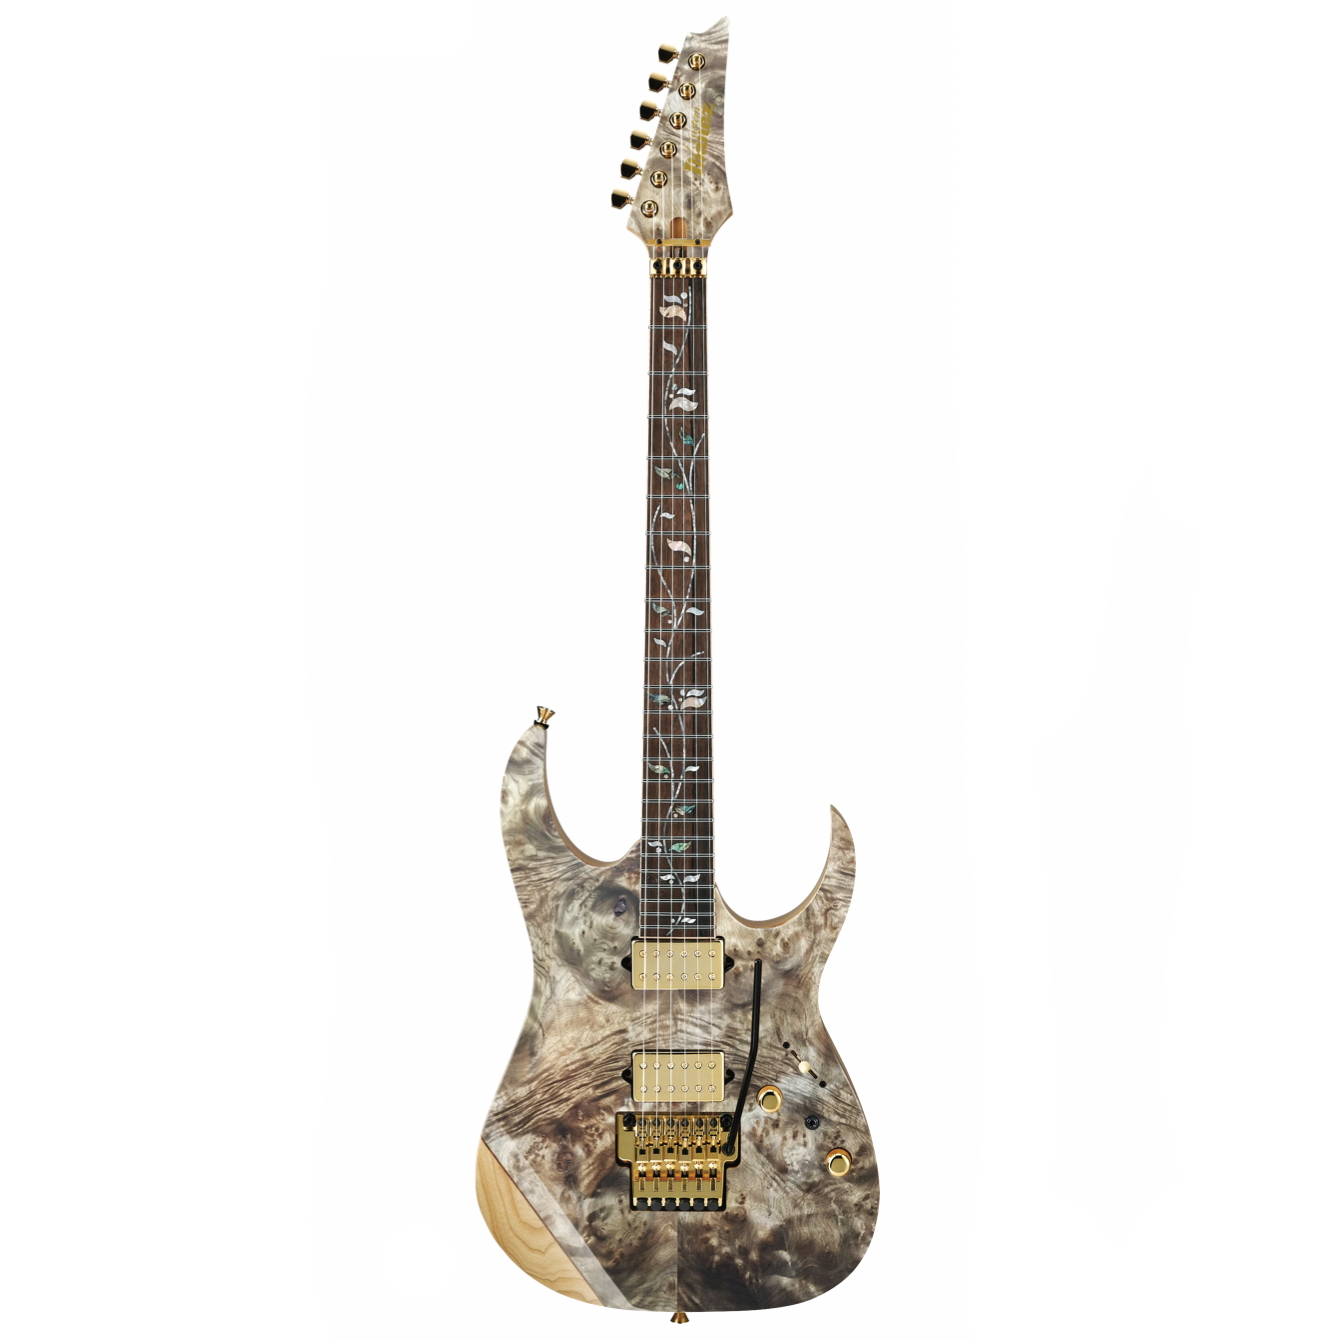 Shop online for Ibanez RG J Custom 2020 RG8520LTDNT today.  Now available for purchase from Midlothian Music of Orland Park, Illinois, USA